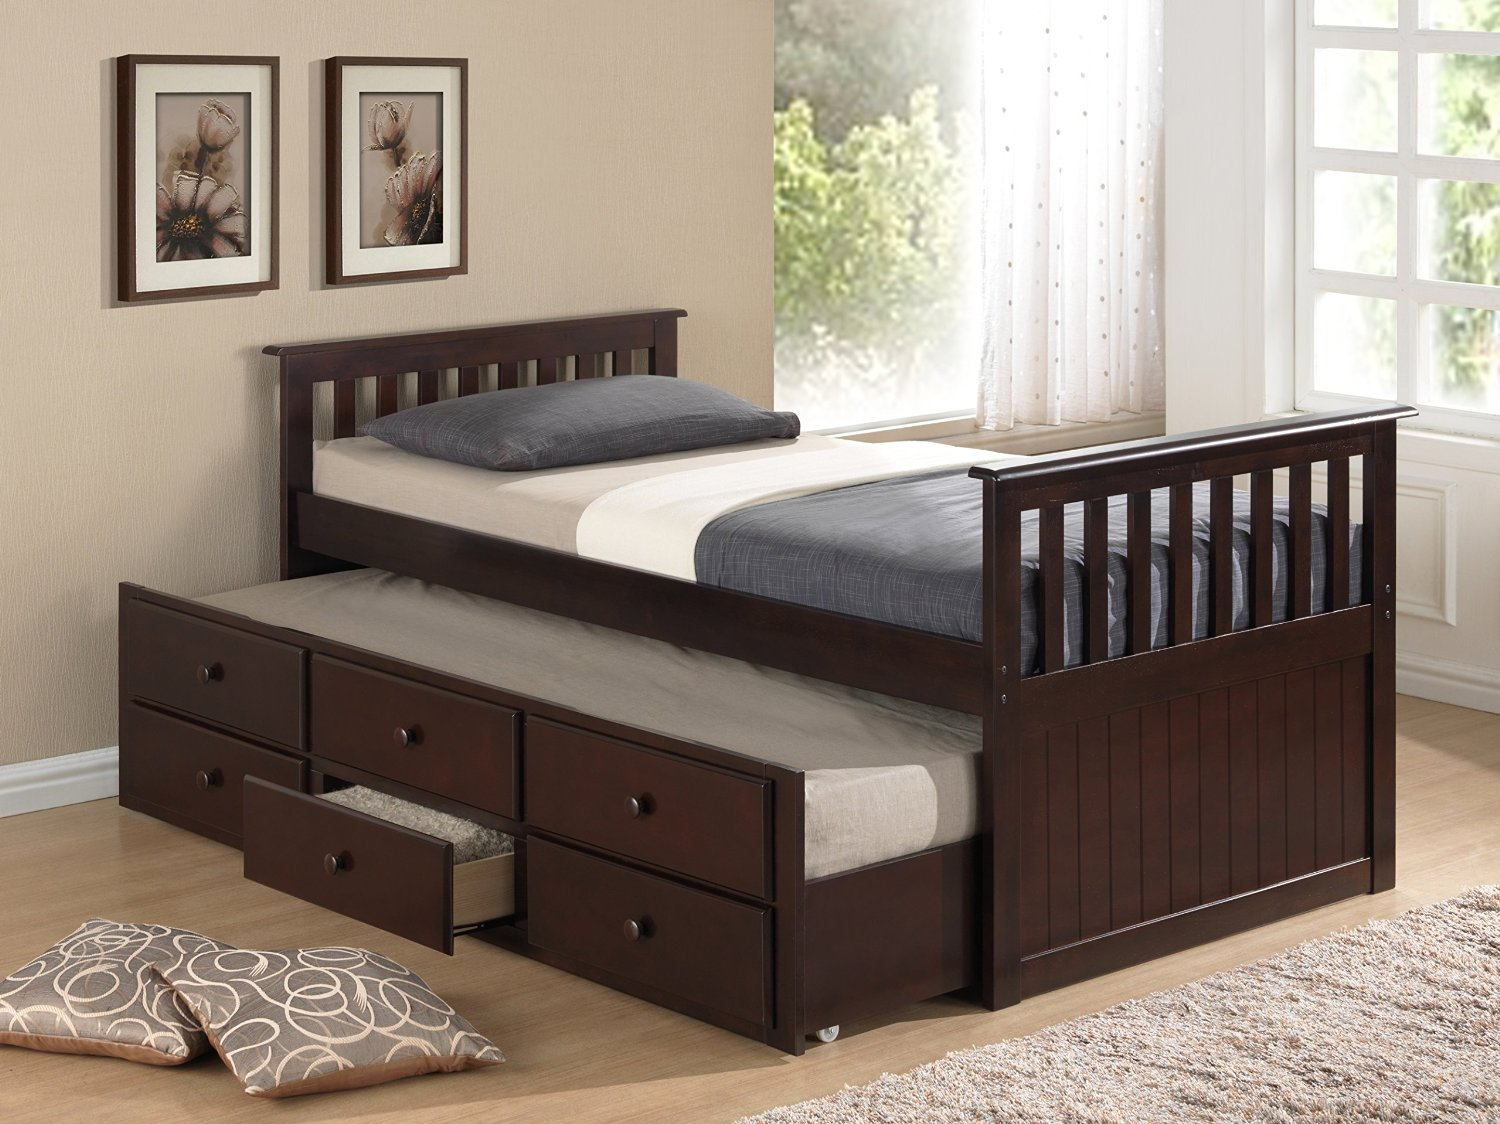 Total fab twin bed with pull out slide out trundle bed underneath best beds for small - Kids bed with drawers underneath ...